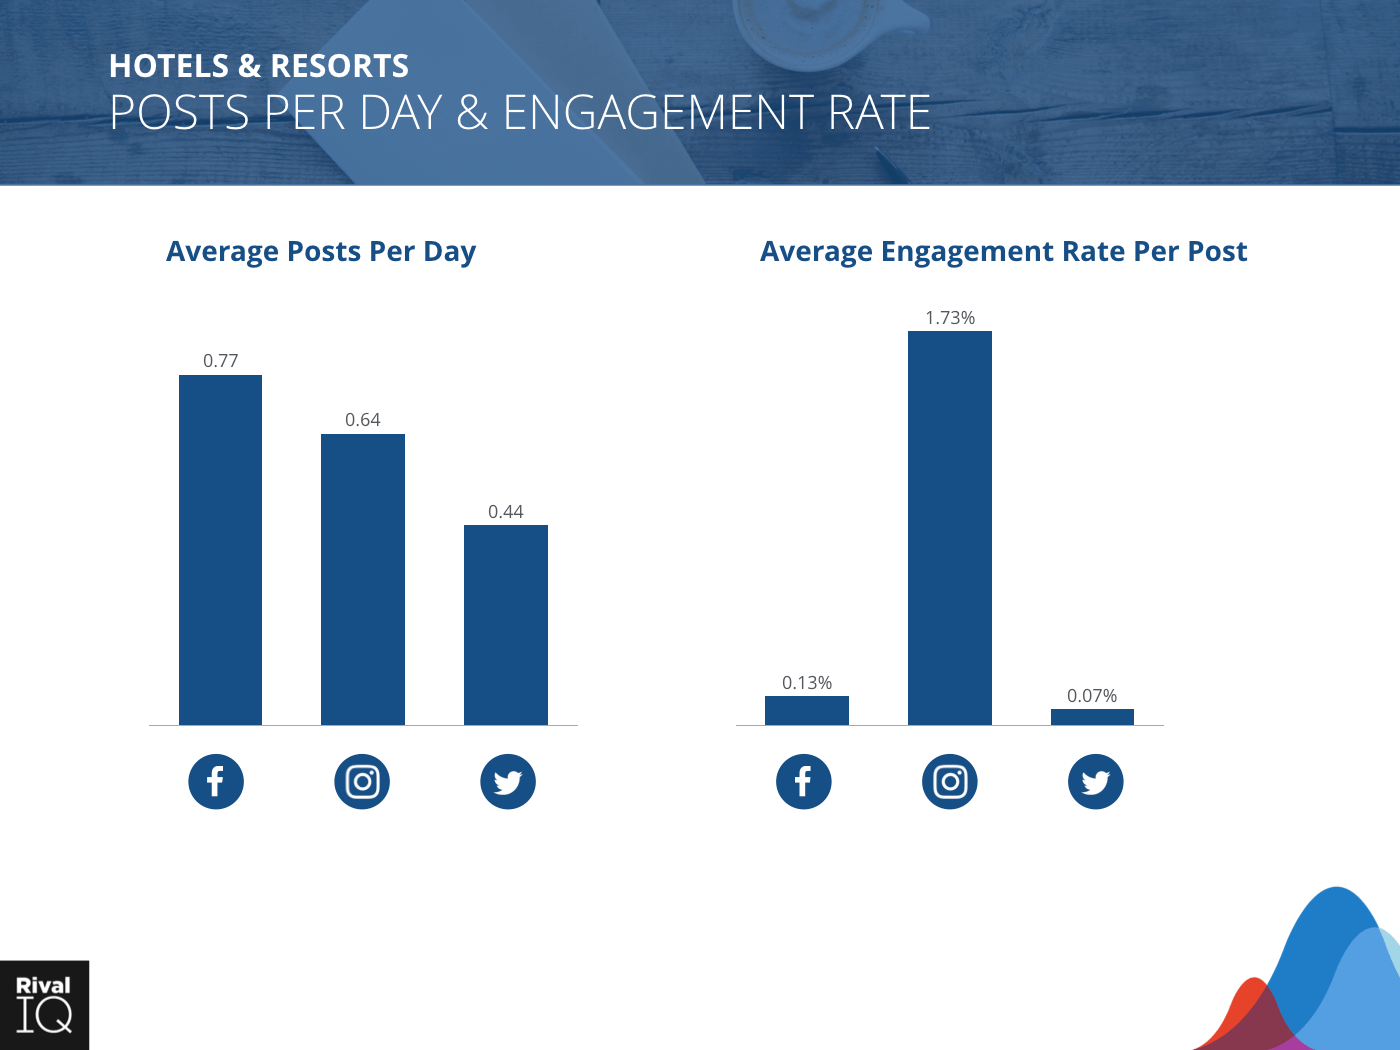 Hotels & Resorts Industry: bar graph, average post per day and engagement rate, all channels.